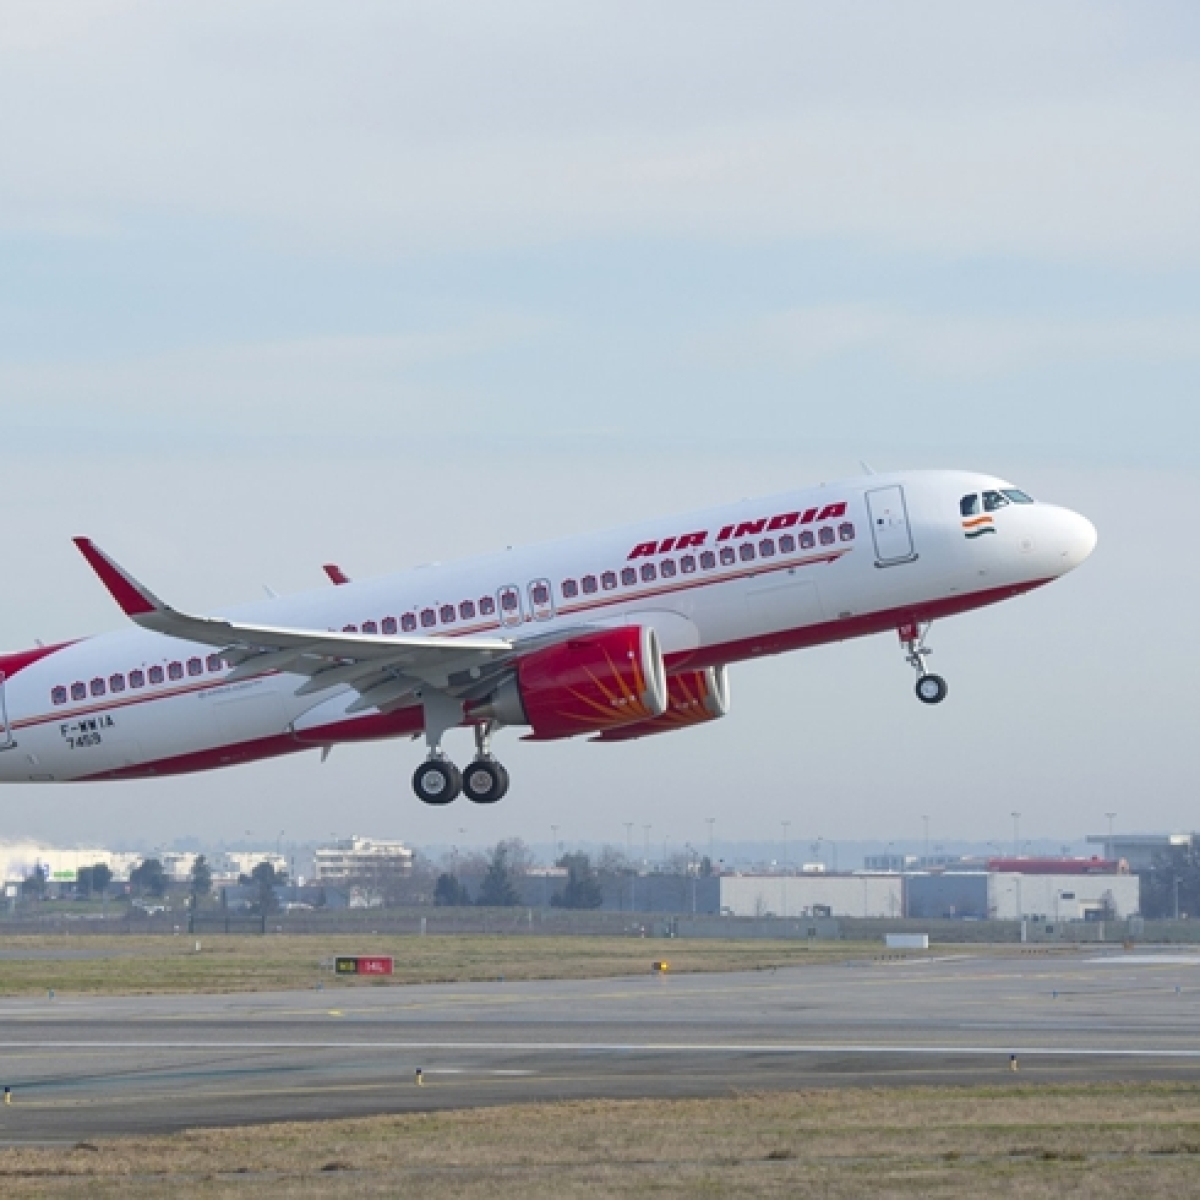 'Passengers had negative test reports from certified labs': Air India after 19 passengers on Vande Bharat flight to Wuhan test positive for COVID-19